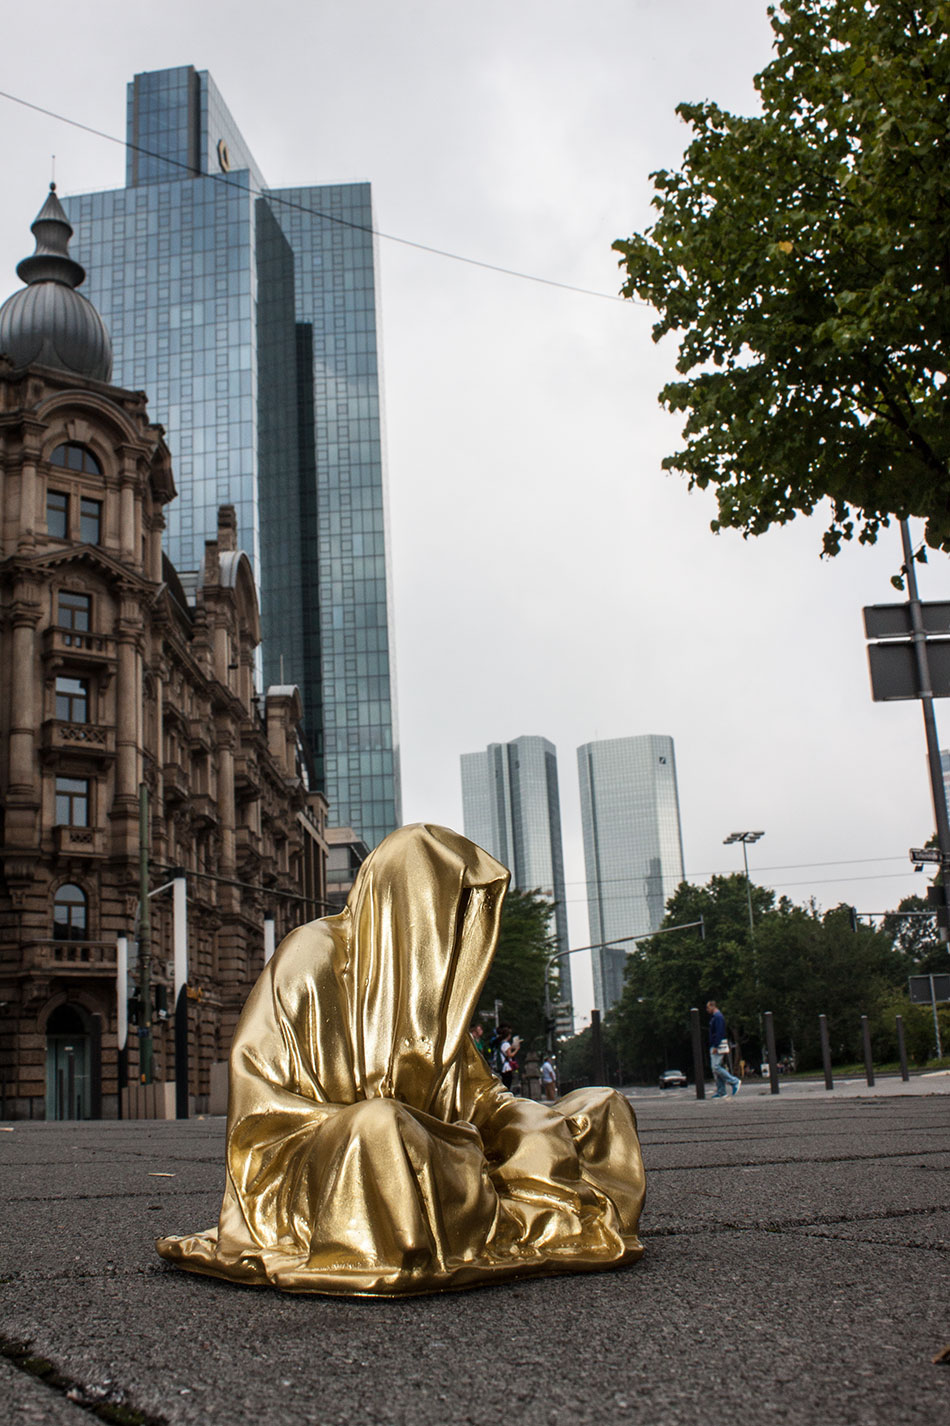 art-germany-frankfurt-guardians-of-time-manfred-kielnhofer-public-modern-contemporary-art-fine-arts-sculpture-design-streat-art-2189